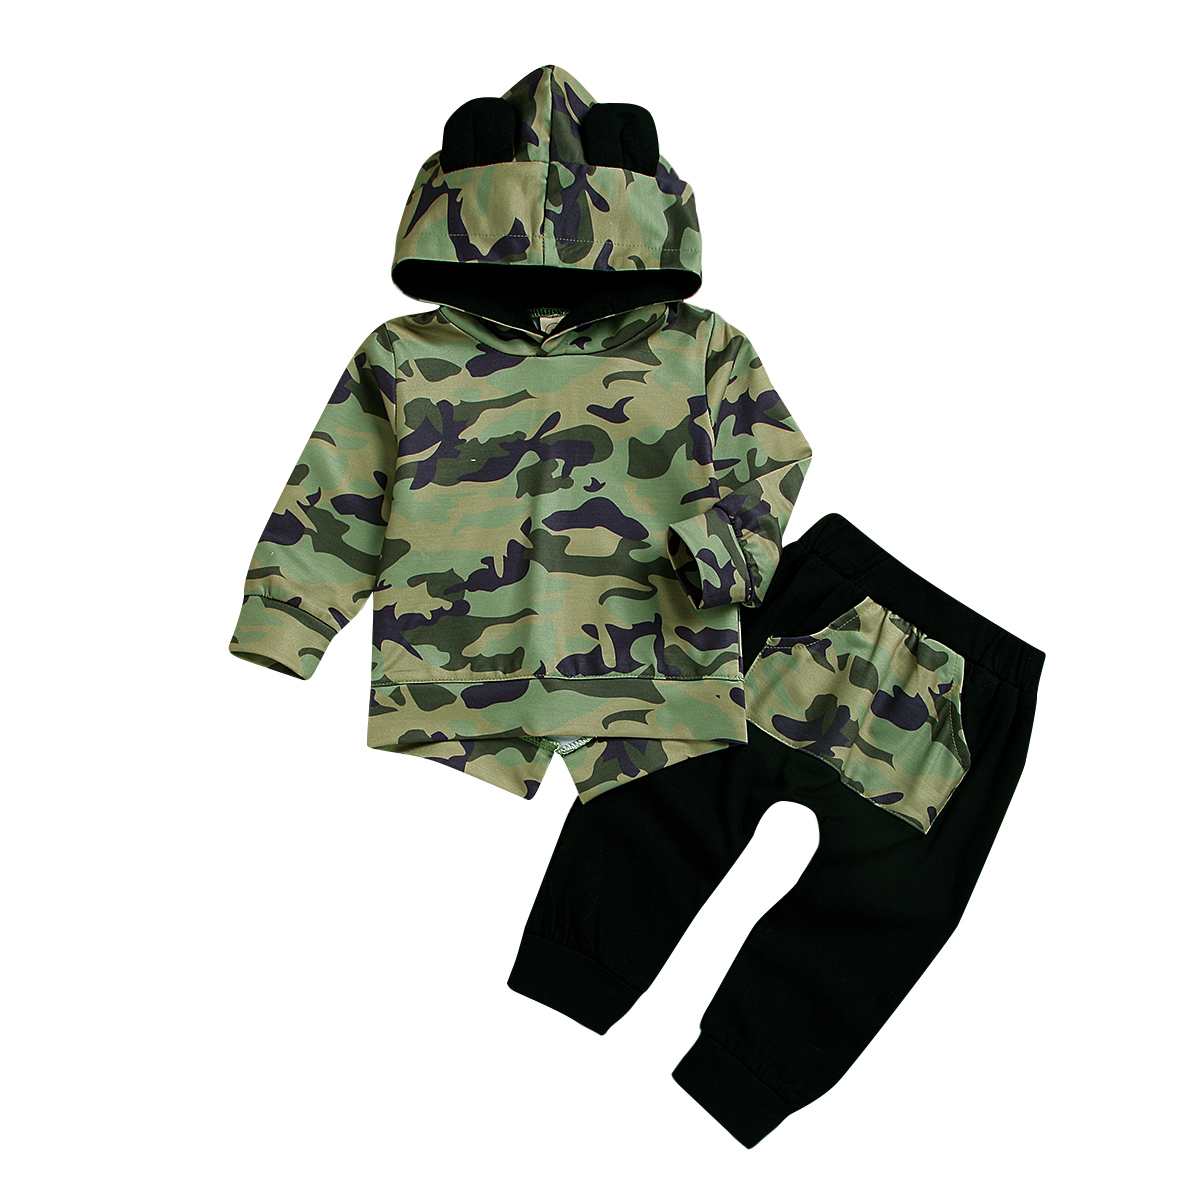 Fall 2019 Toddler Autumn Kids Tracksuit Boys Camouflage Hoodies   Little Boy Fashion Clothes 5t Winter Children Clothes D20